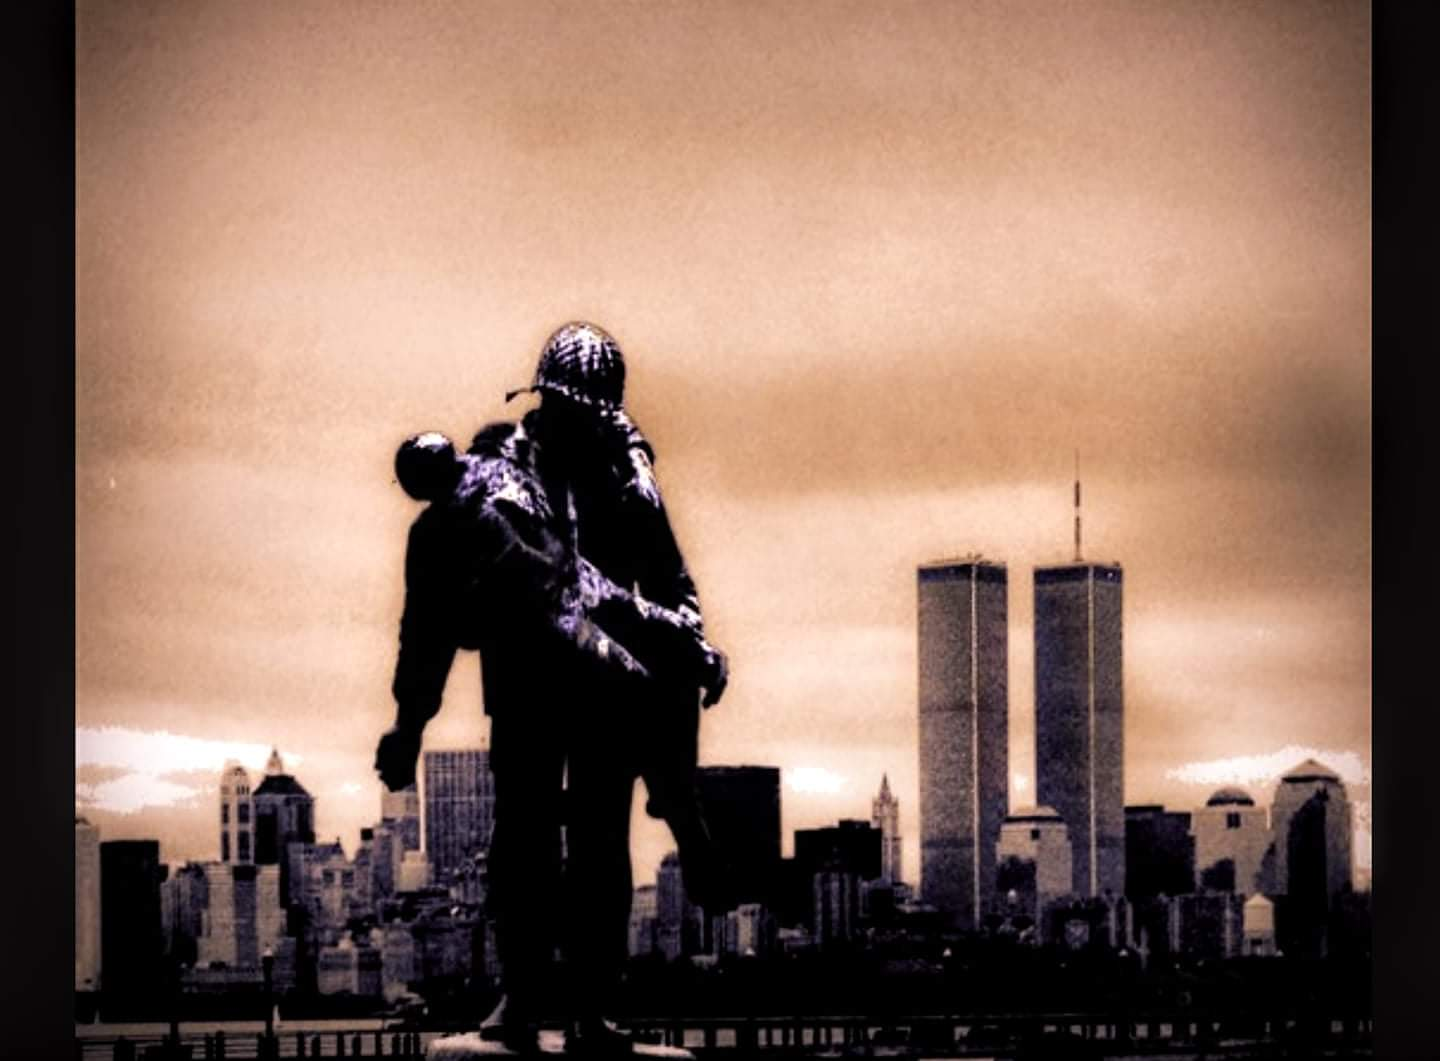 Photo taken by Daniel J. Smith of the World Trade Center from Liberty State Park